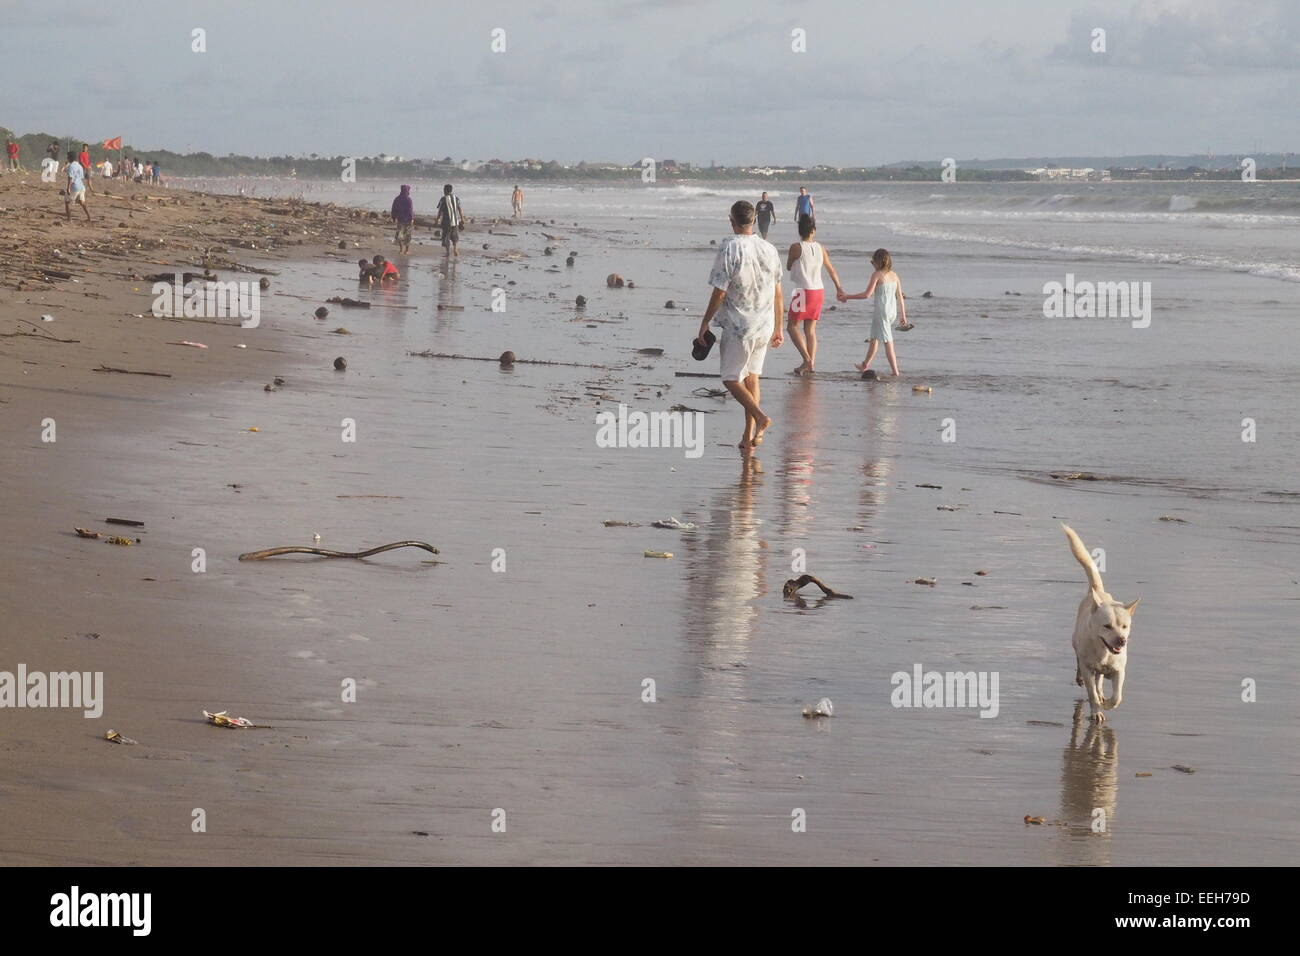 A white dog and tourists walking along a beach with litter. - Stock Image